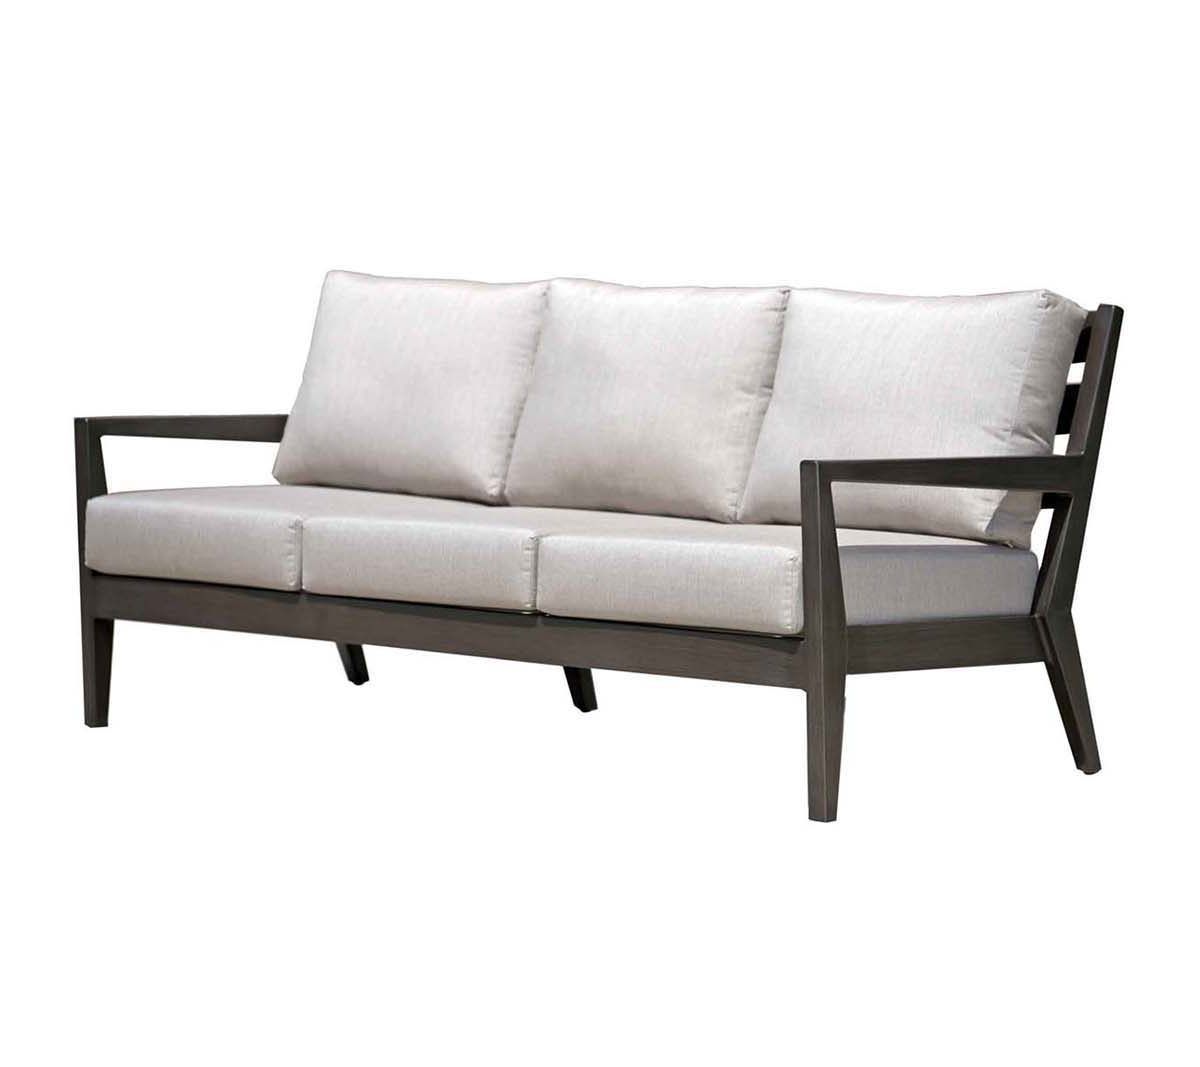 Ratana Lucia Sofa | Patio Bay